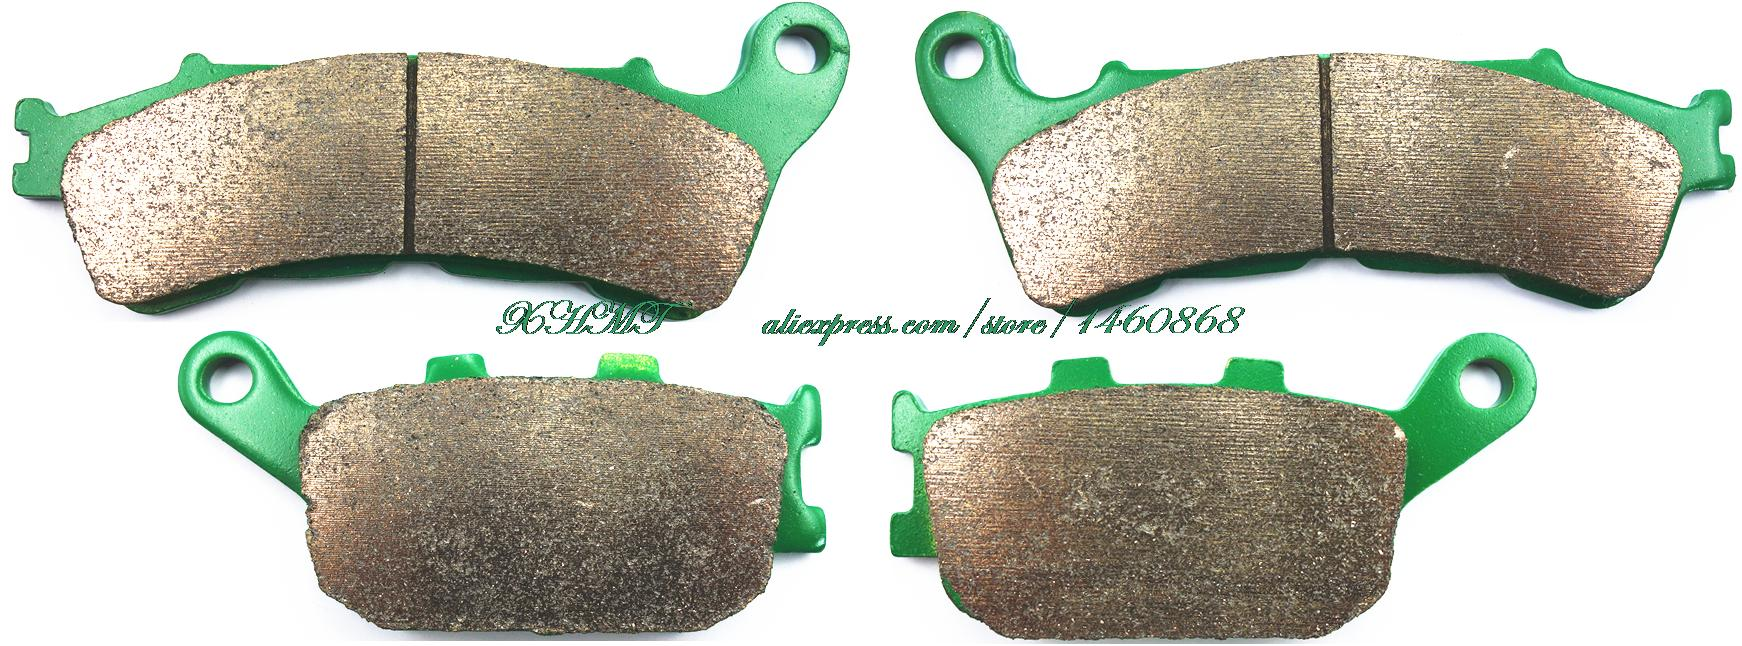 Brake Pads Set For <font><b>Honda</b></font> Nc700 Nc <font><b>700</b></font> Sa,Xa Sd,Xd Abs / <font><b>Integra</b></font> Nc <font><b>700</b></font> Dc Dd 2012 & Up/ Cbf500 Cbf 500 Abs 2004 2005 2006 2007 image